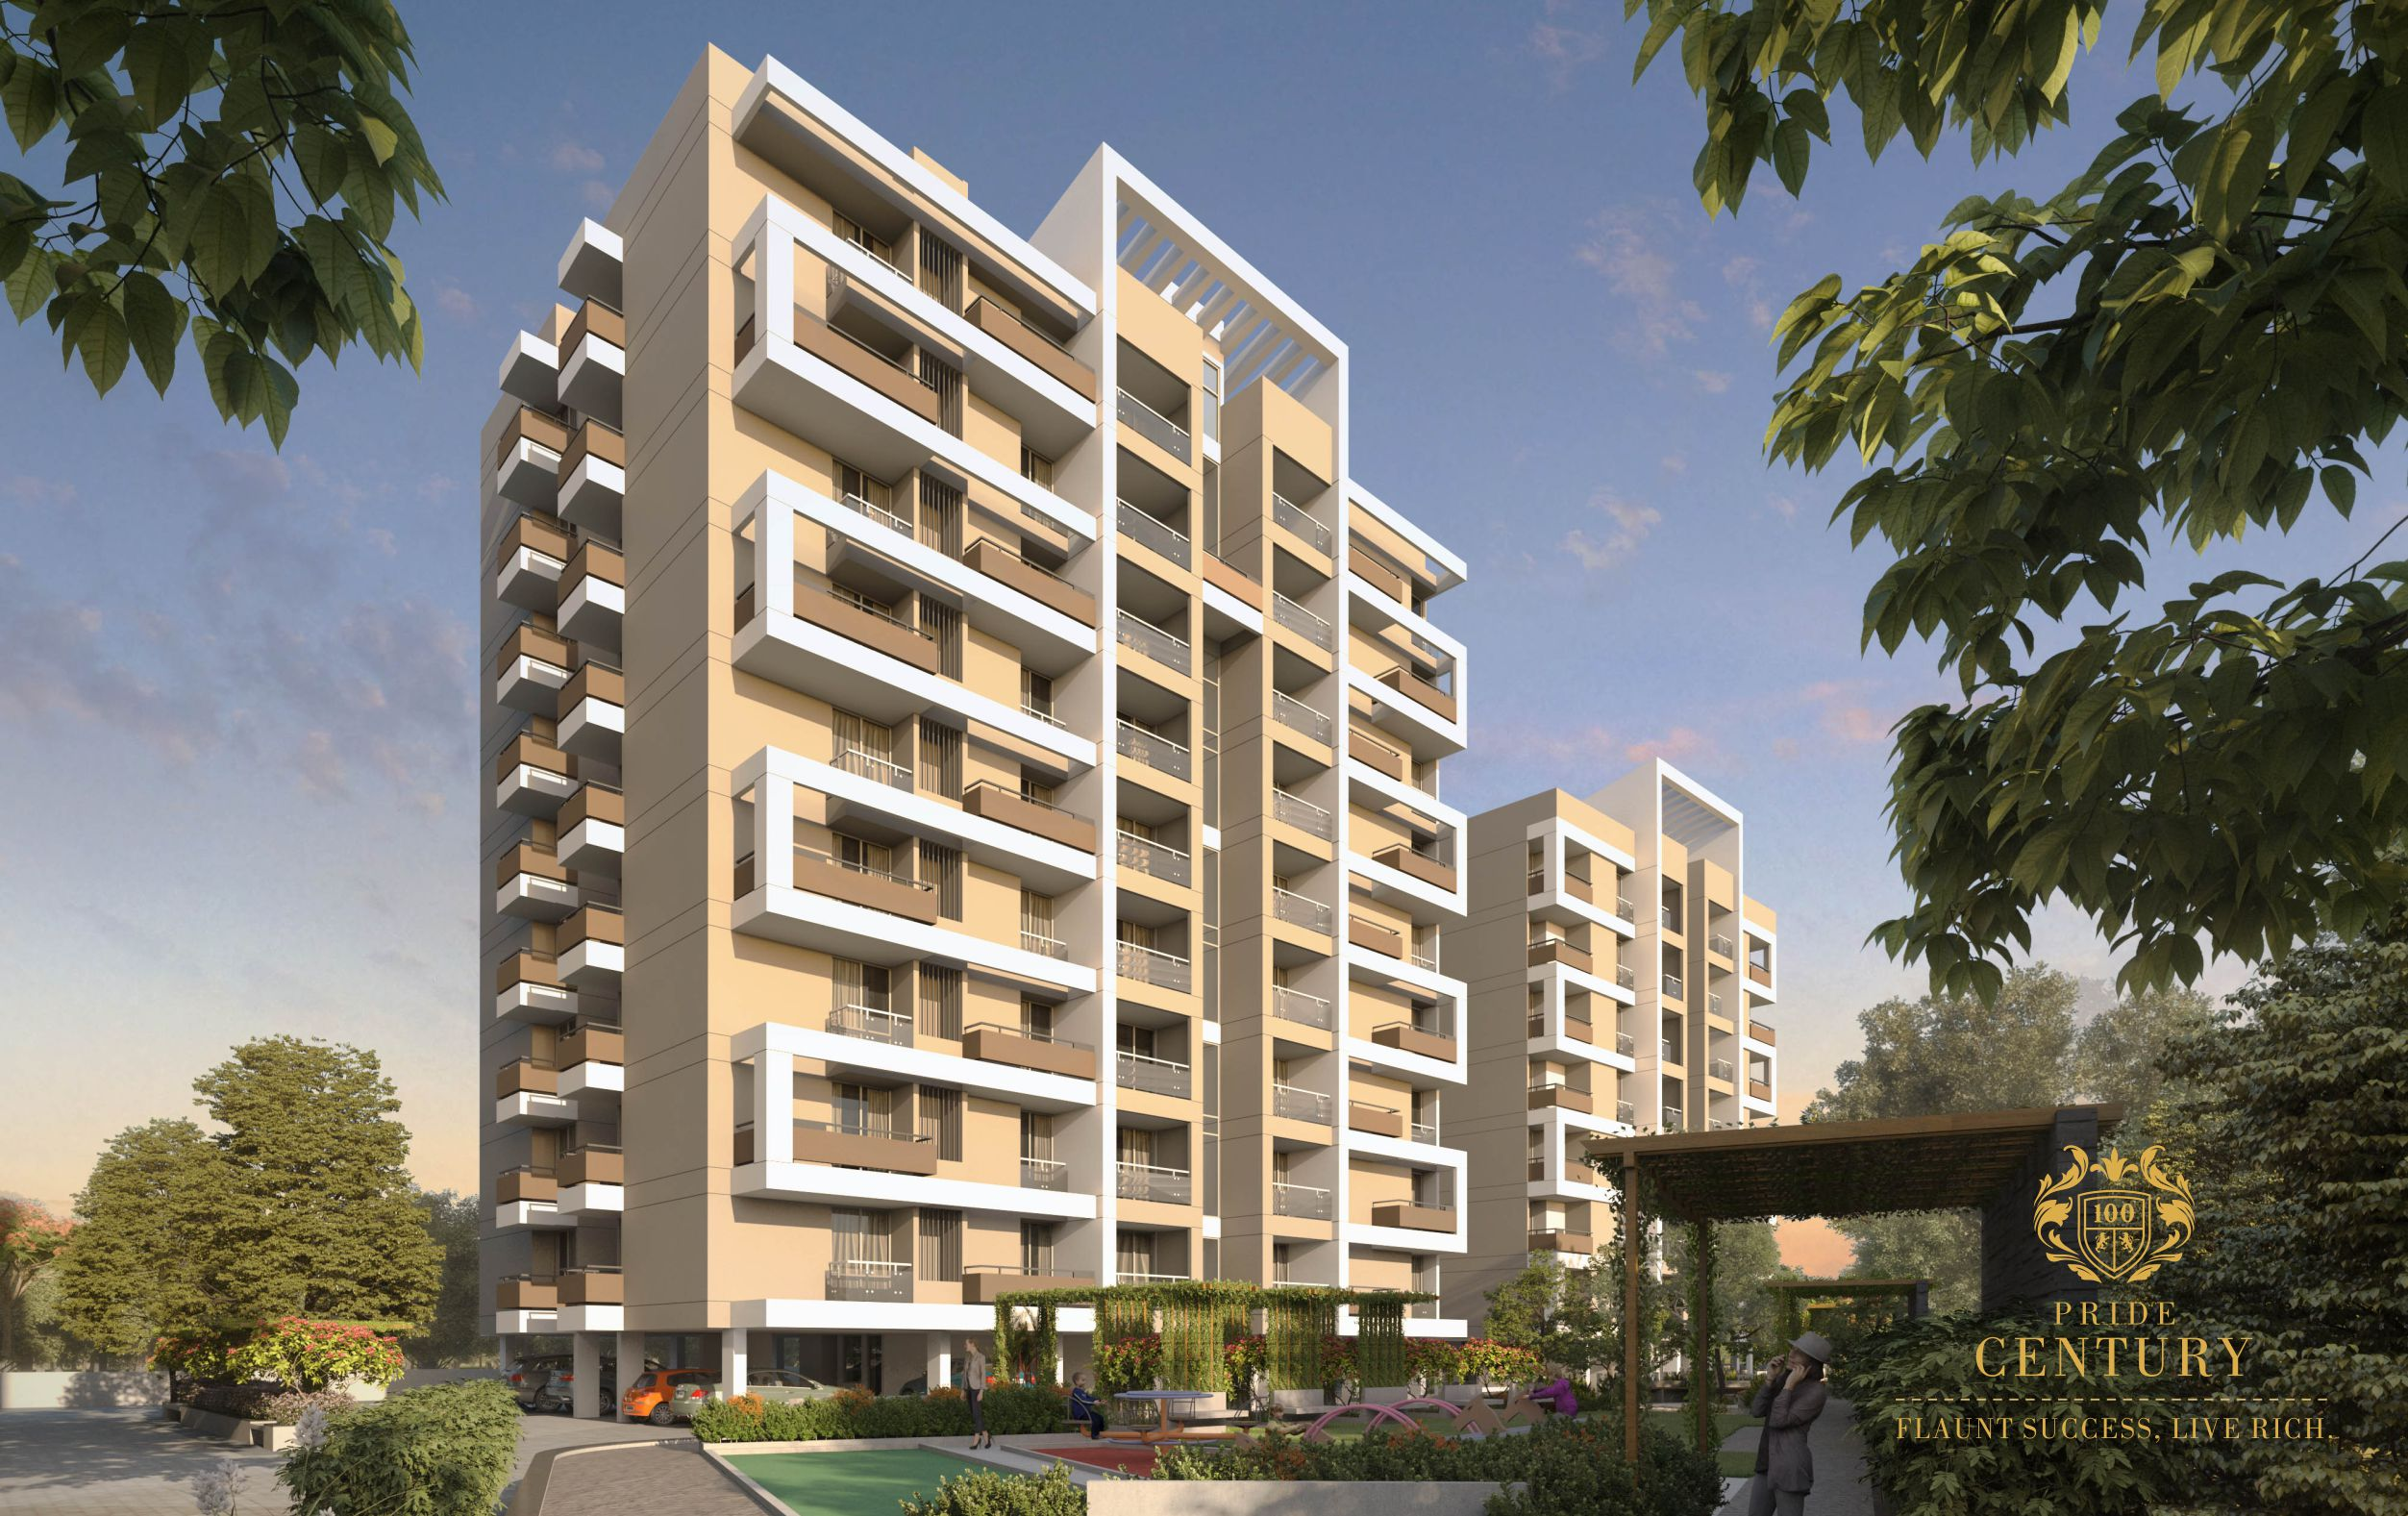 most trusted builders pride century flats with all facilities at kalda corner in aurangabad-properties-real-estate-luxurious flats